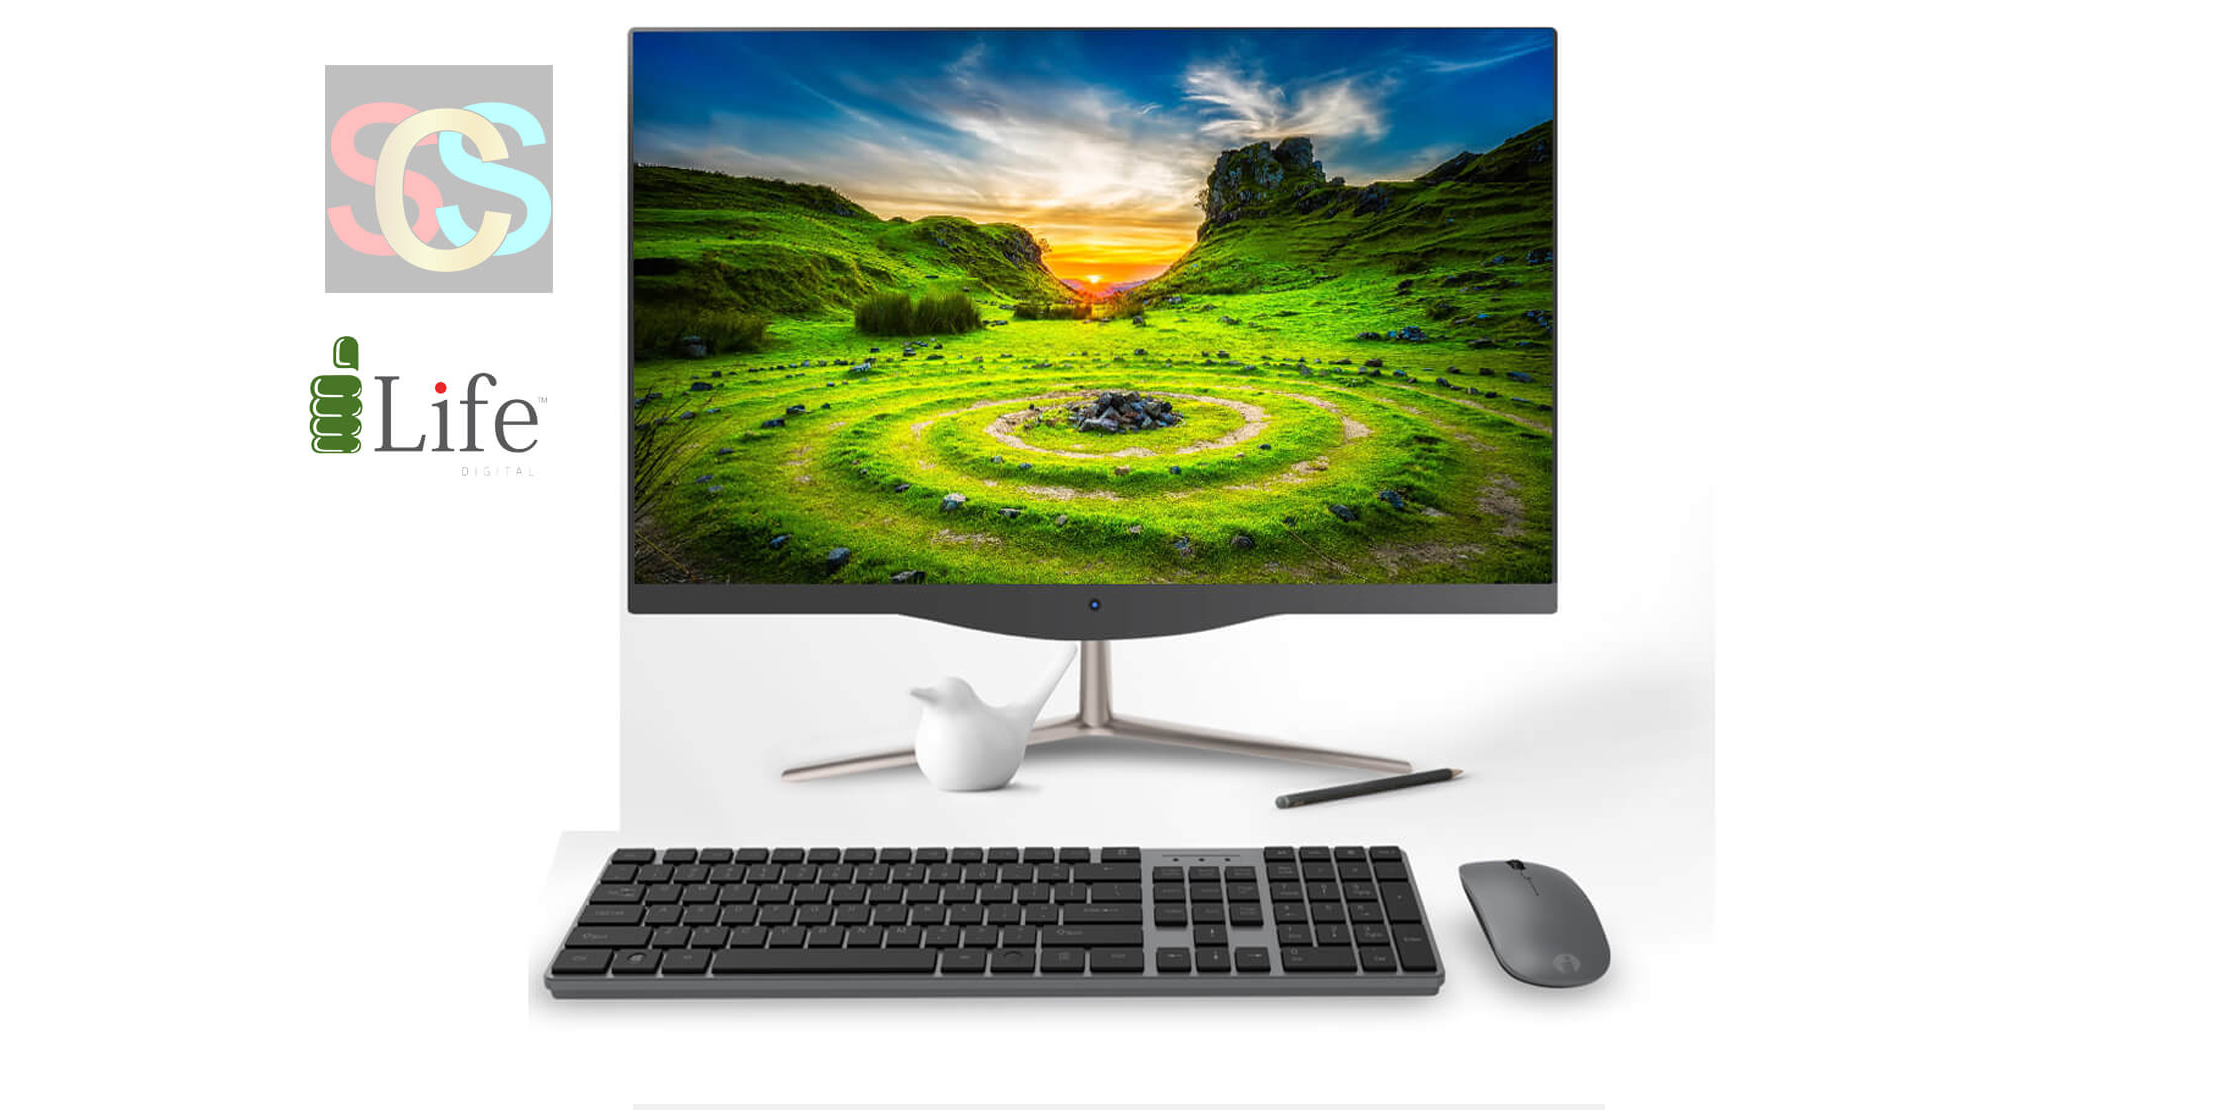 i-Life ZED PC CX3 21.5″ HD Core i3 All in One PC with Genuine Windows 10 The all-new Zed Air CX3, featuring the latest generation of Intel Core i3-5005U Processor (3M Cache, 2.00 GHz), Intel HD Graphics, help apps load faster and allow multiple tasks to run simultaneously without lag. Easily take on everyday computing tasks, watch videos, or surf the web with 4 GB DDR III RAM. USB 3.0 helps you to transfer data up to 1.5gbps speed. The ultrathin Zed PC CX3 saves on space and gives any room, an extra touch of elegance with only 9 mm screen thickness. Zed PC CX3 with its battery backup, supports up to 3 hours of runtime in case of an unexpected power outage and also owns M.2 slot. With this you can Browsing, watching movies online is faster with the 802.11ac wireless standard. Windows 10 home gives you great multi-tasking features for quickly and efficiently getting things done. And enjoy additional security features that help to safeguard you against device theft and malicious software. Wireless Keyboard and Mouse allow stress free working and help to increase you overall productivity.